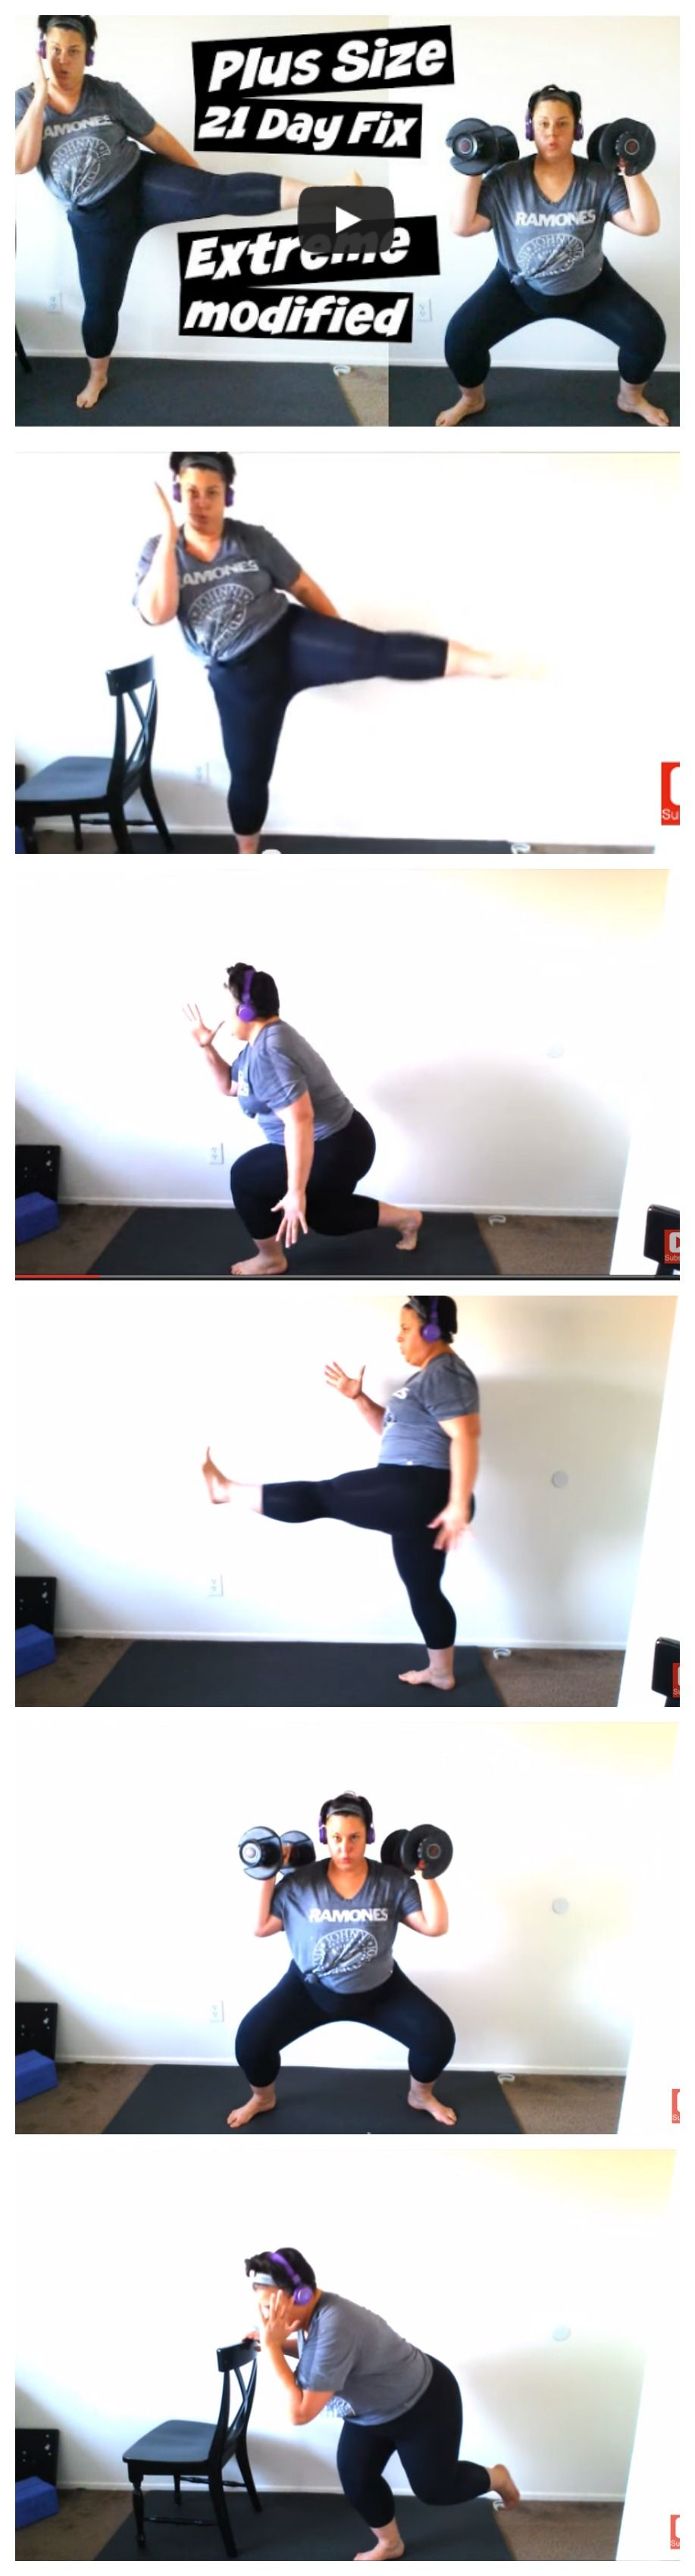 Plus Size 21 Day Fix Extreme Workout Modification. This is how I modify the workouts at my ability and challenge it. This is not a video lesson on proper form, it is an example of how far I have come from when I started at over 330 lbs. and unable to lunge or squat. This video is FULL of modifications that can be used in programs like 21 Day Fix, P90X, Insanity Max :30, and Extreme. - CLICK PICTURE to WATCH full video